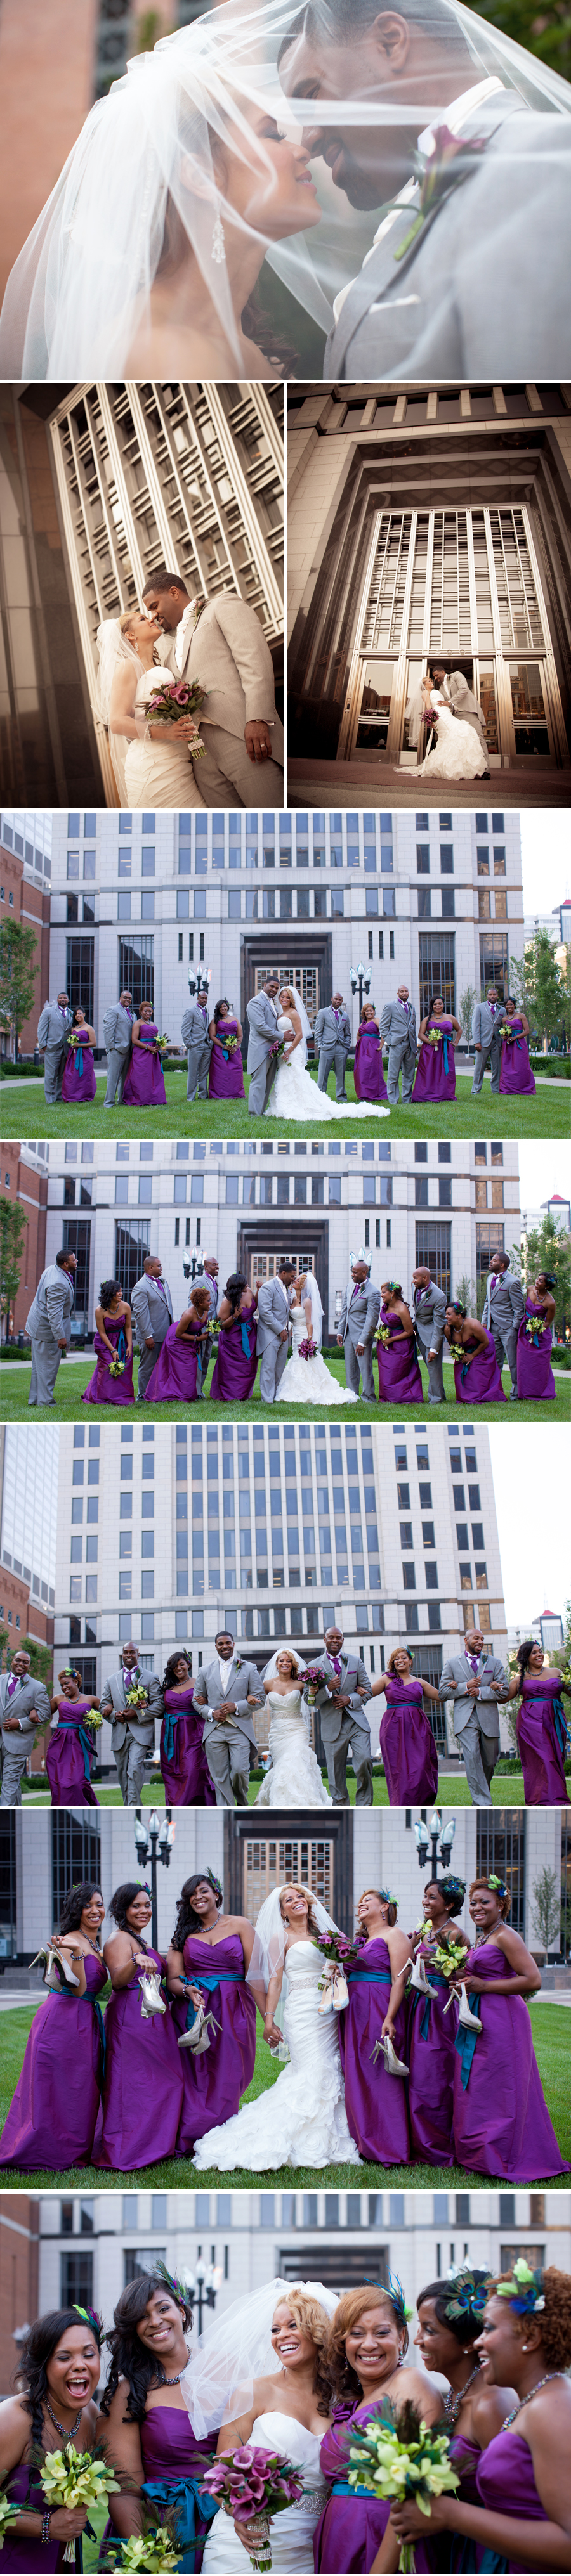 The plaza in front of the Aegon Building was a great backdrop to these bridal party shots. Bridal party photographs are always so much more interesting when they show everyone having fun. This group had a blast!!